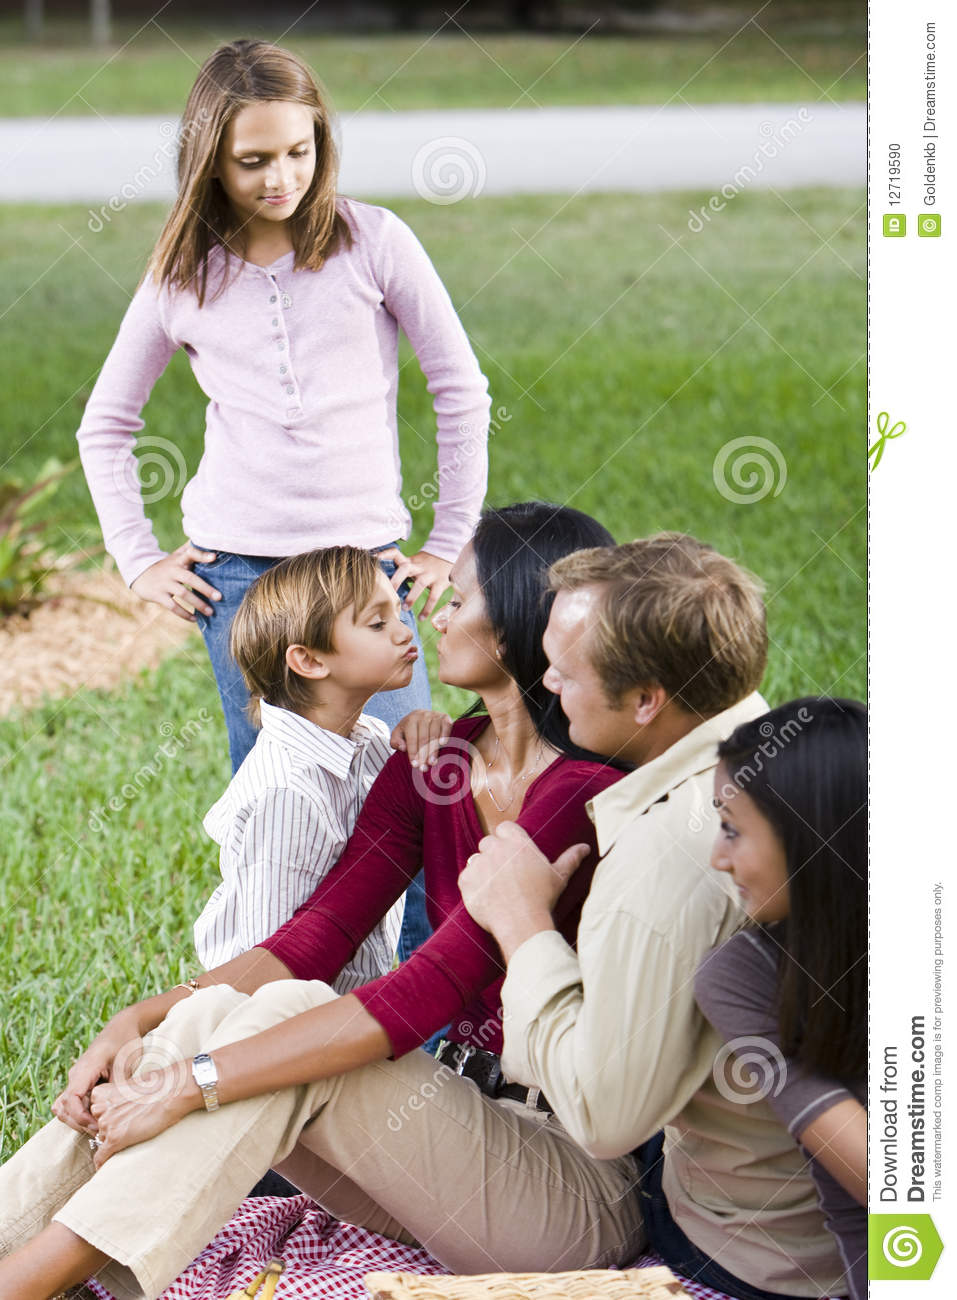 Affectionate family of five together in park